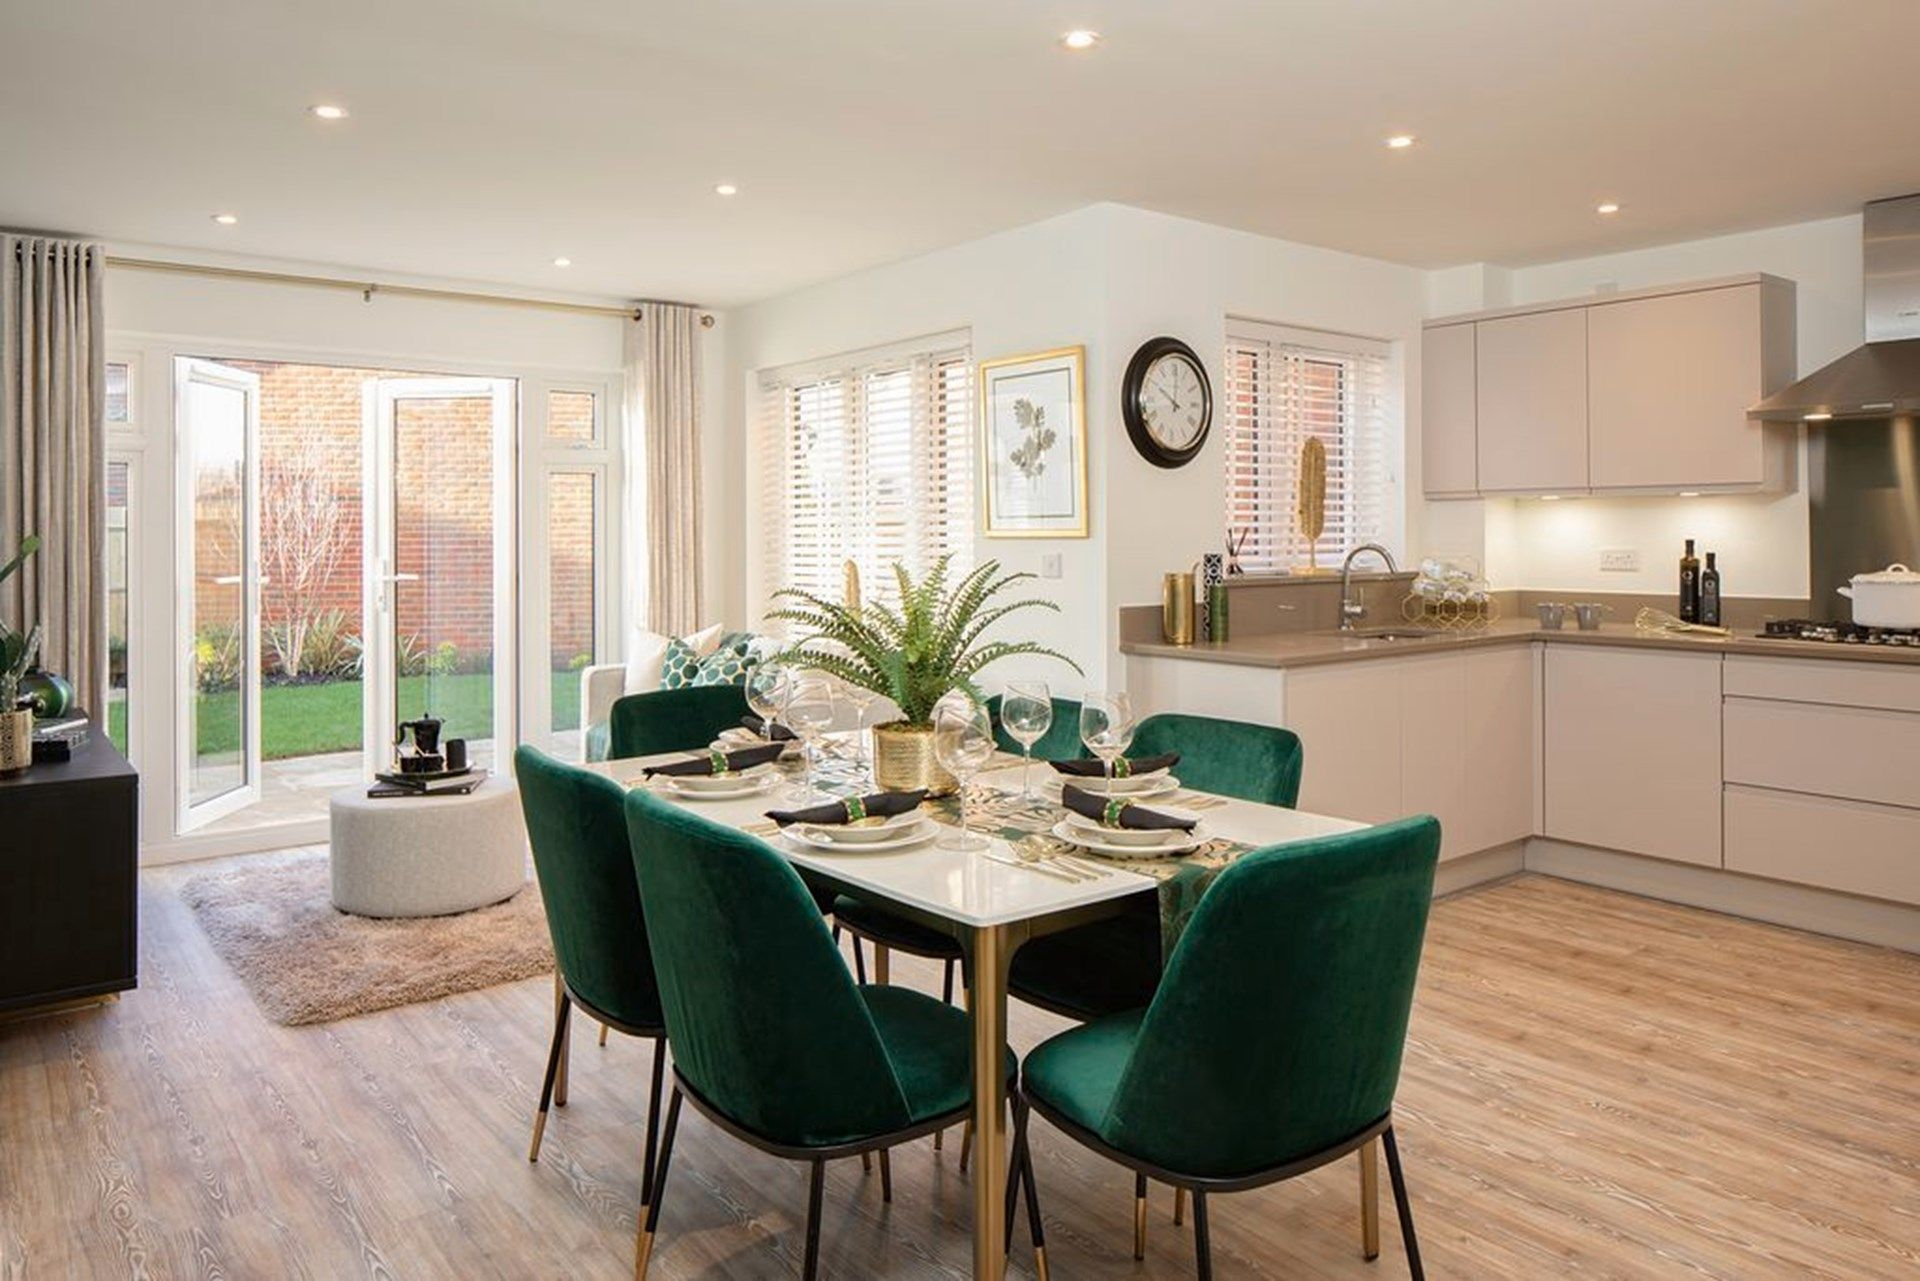 Property photo 1 of 18. Shopwyke Lakes, Chichester